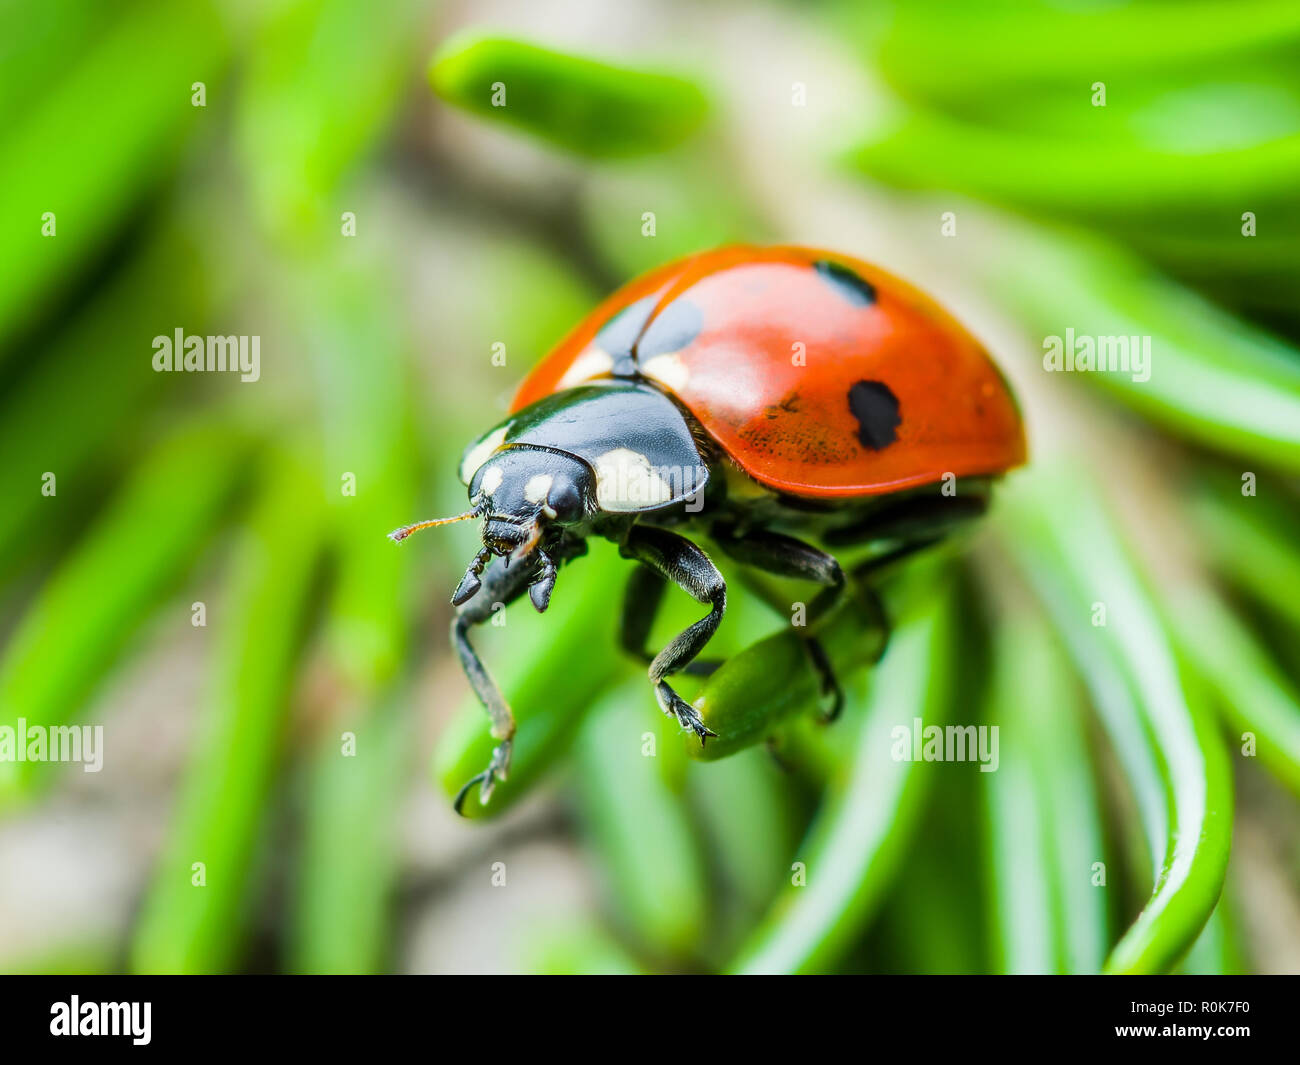 Ladybug Insect Crawling on Green Fir Macro - Stock Image